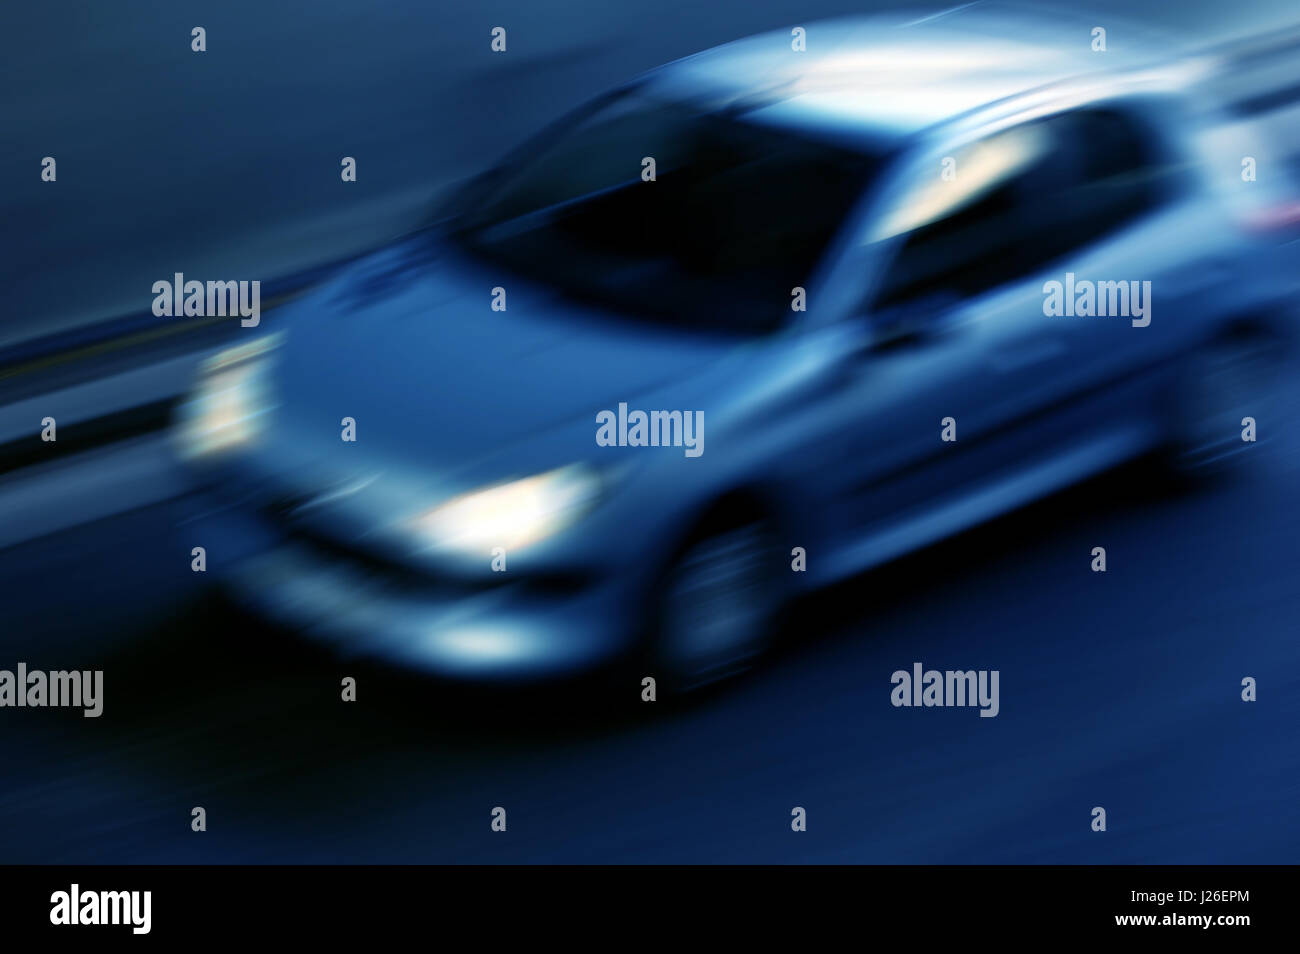 car under a city tunnel with motion blur effect - Stock Image